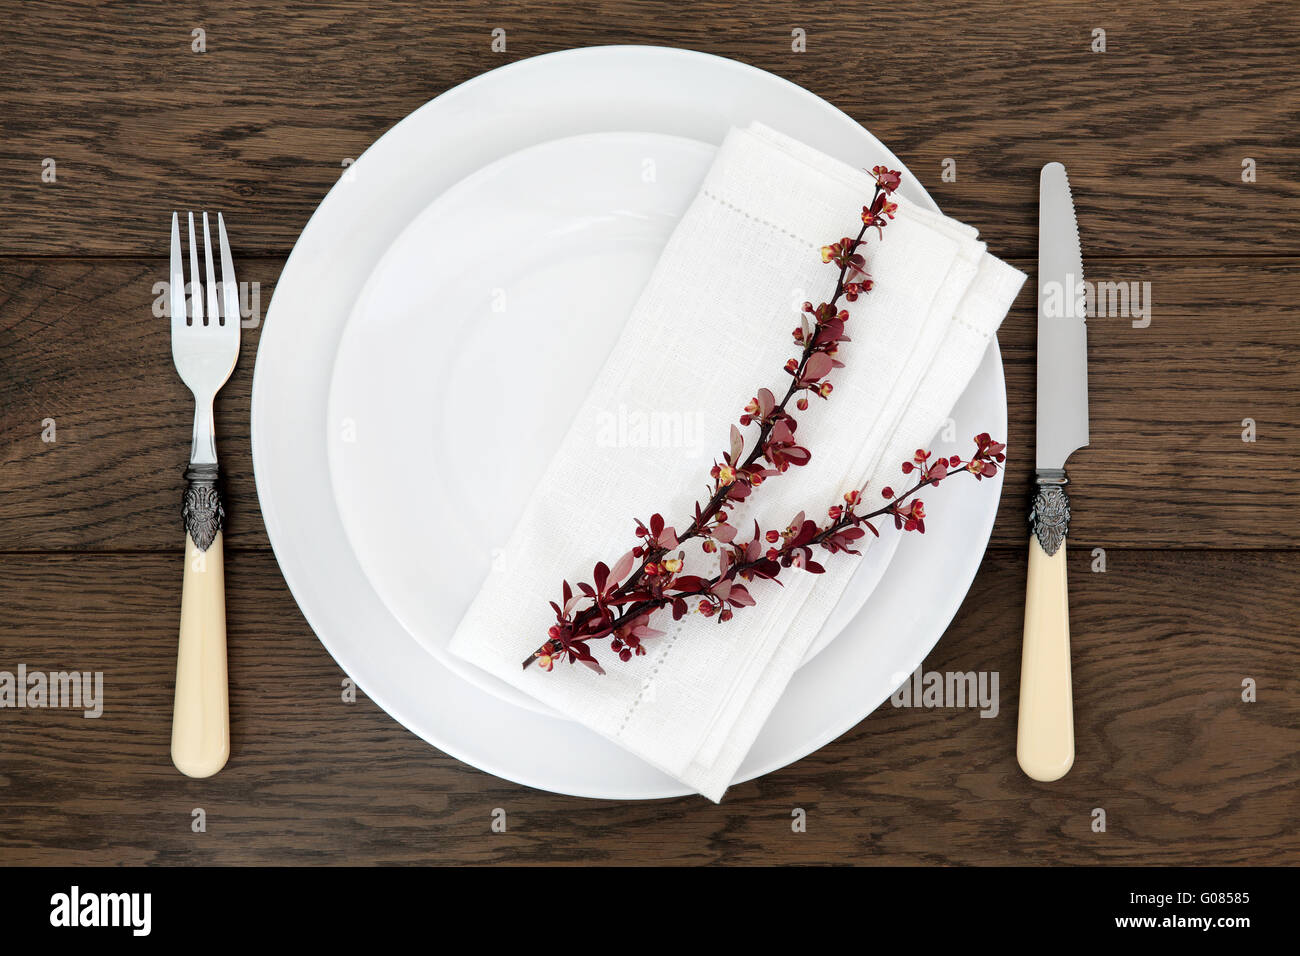 Dinner table place setting with white round porcelain dishes berberis leaf sprig linen napkin with antique cutlery. & Dinner table place setting with white round porcelain dishes Stock ...